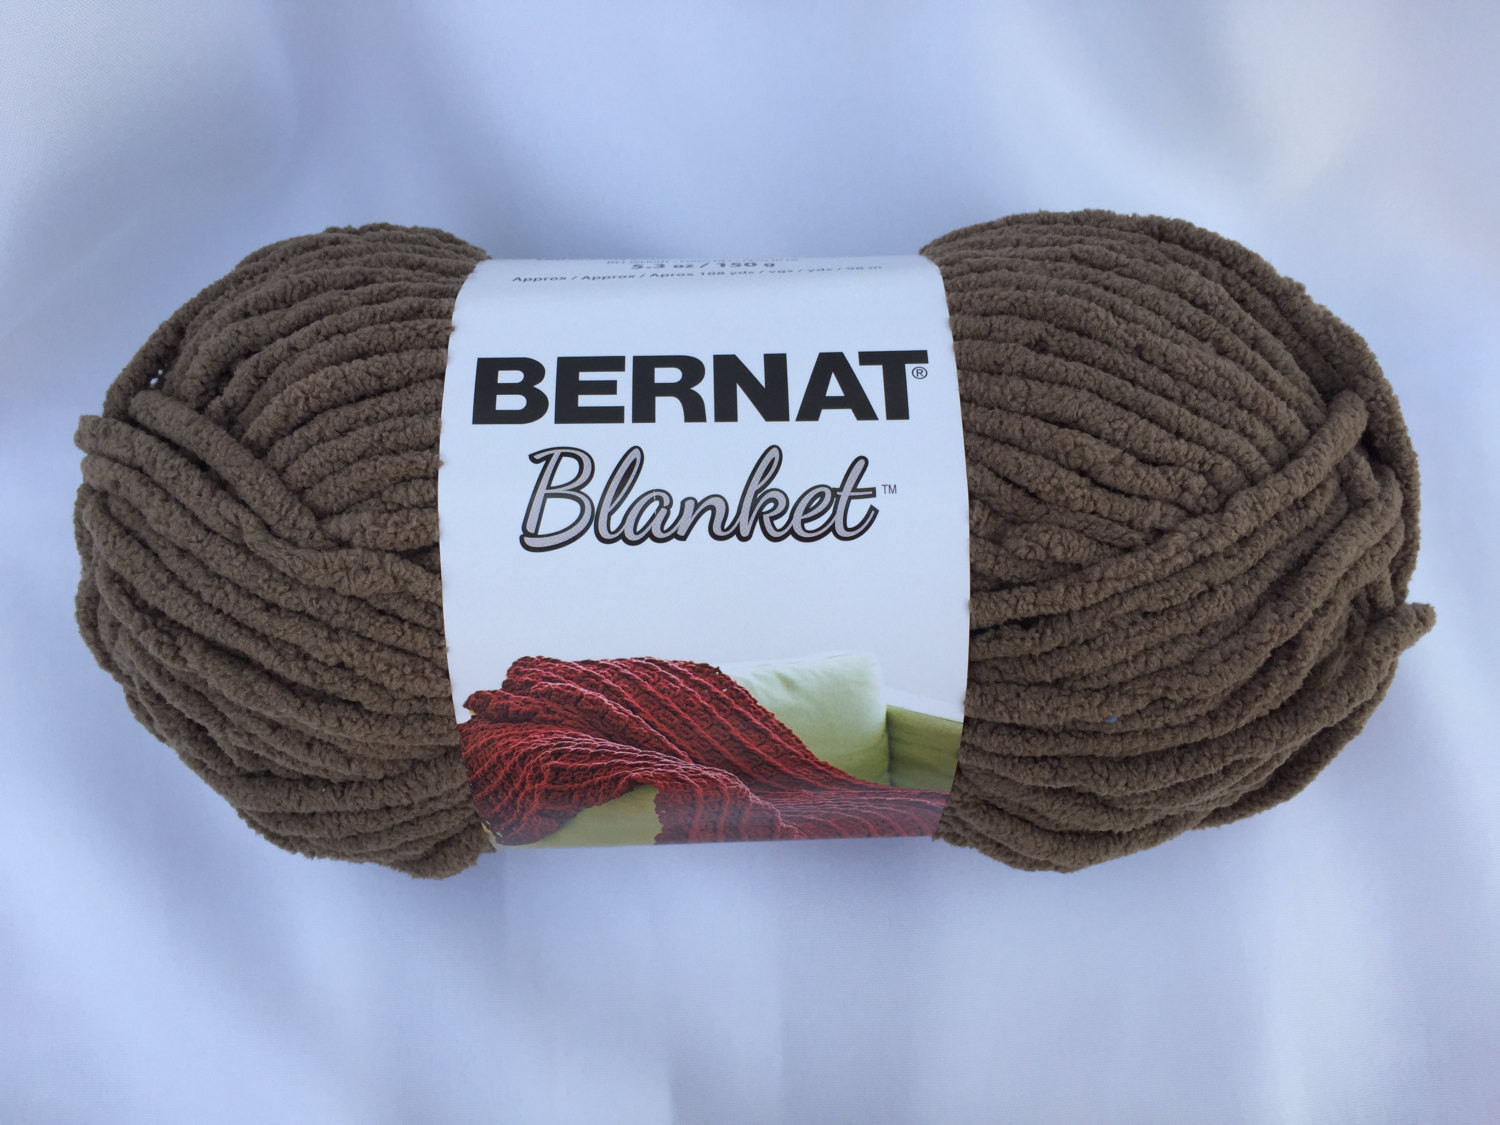 Bernat Super Bulky Yarn Inspirational Taupe Bernat Blanket Yarn 150g 5 3 Oz Super Bulky Of Luxury 41 Ideas Bernat Super Bulky Yarn